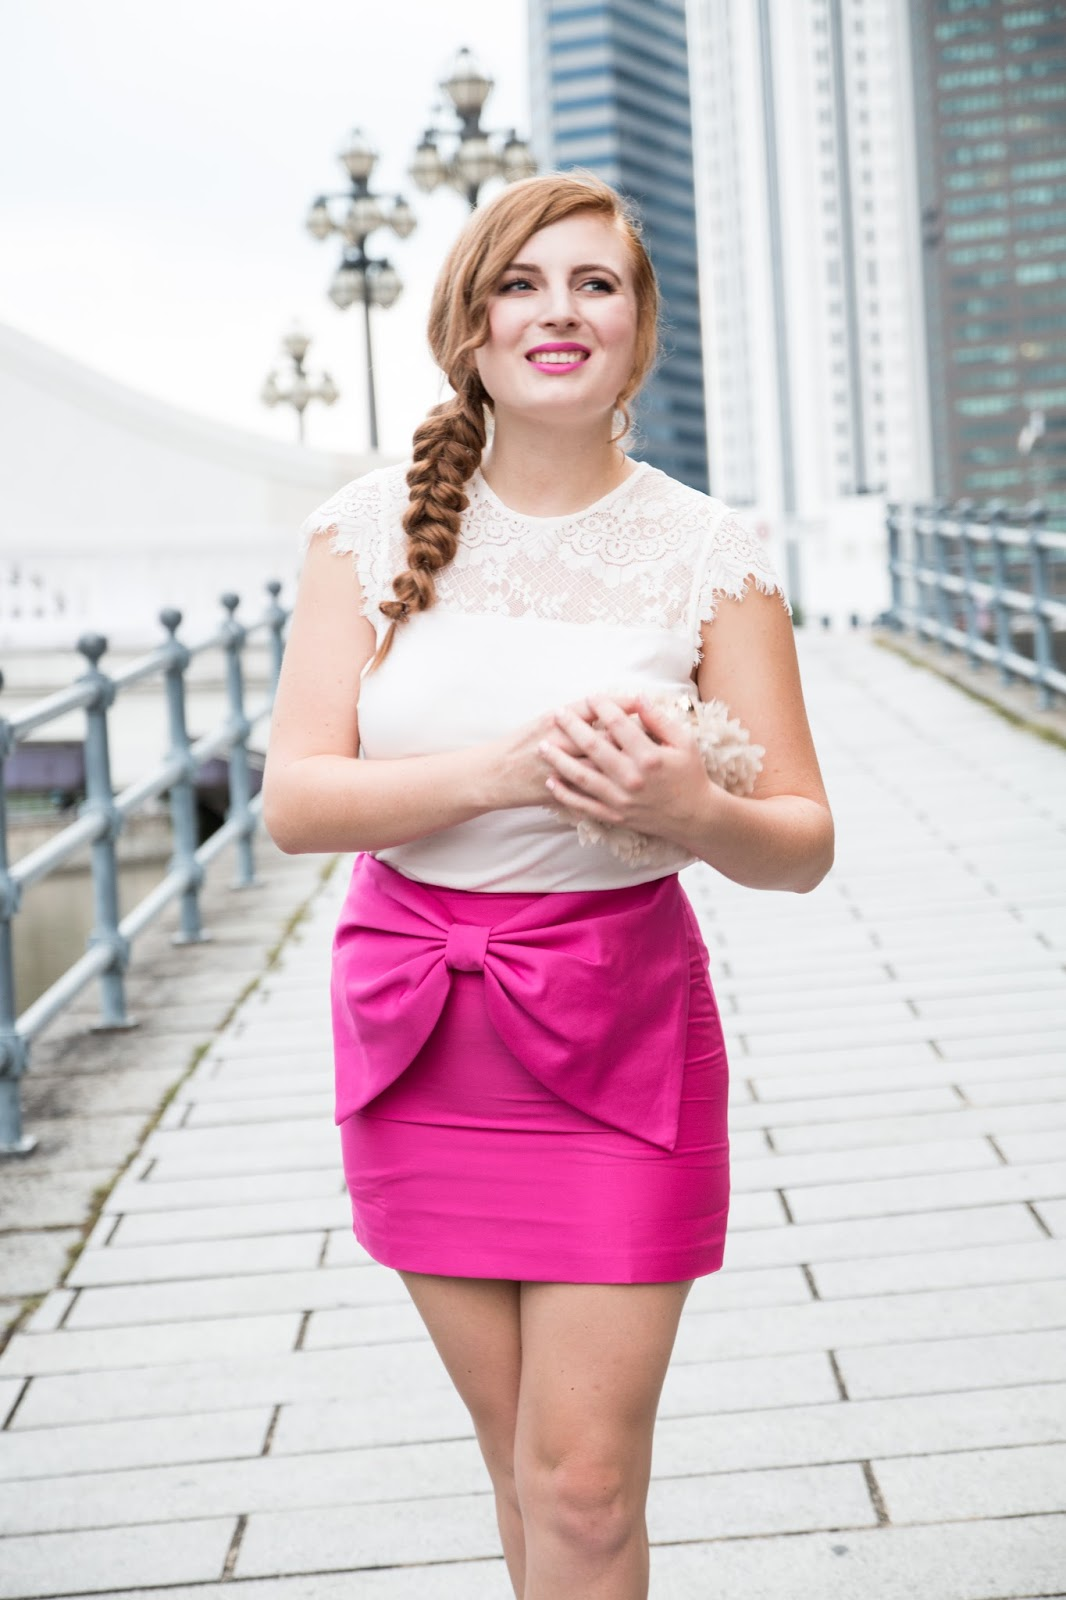 Global Fashion Gal - Hot Pink Bow Skirt for Valentine's Day